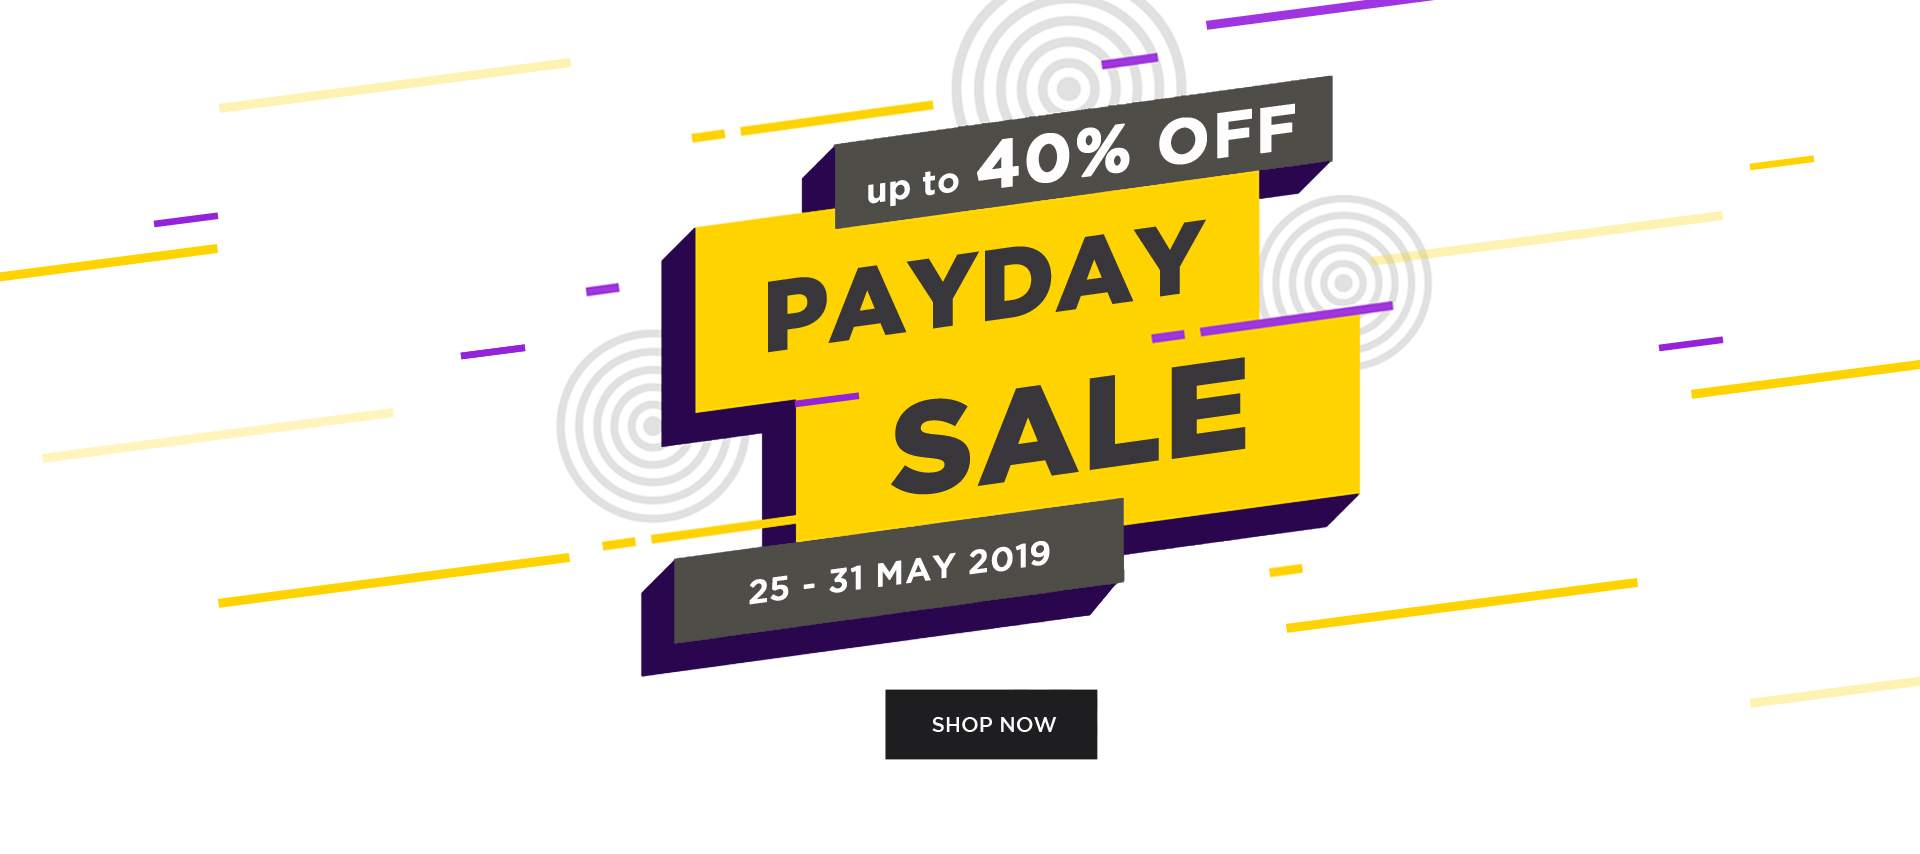 Diskon Urban Icon Payday Sale up to 40% off